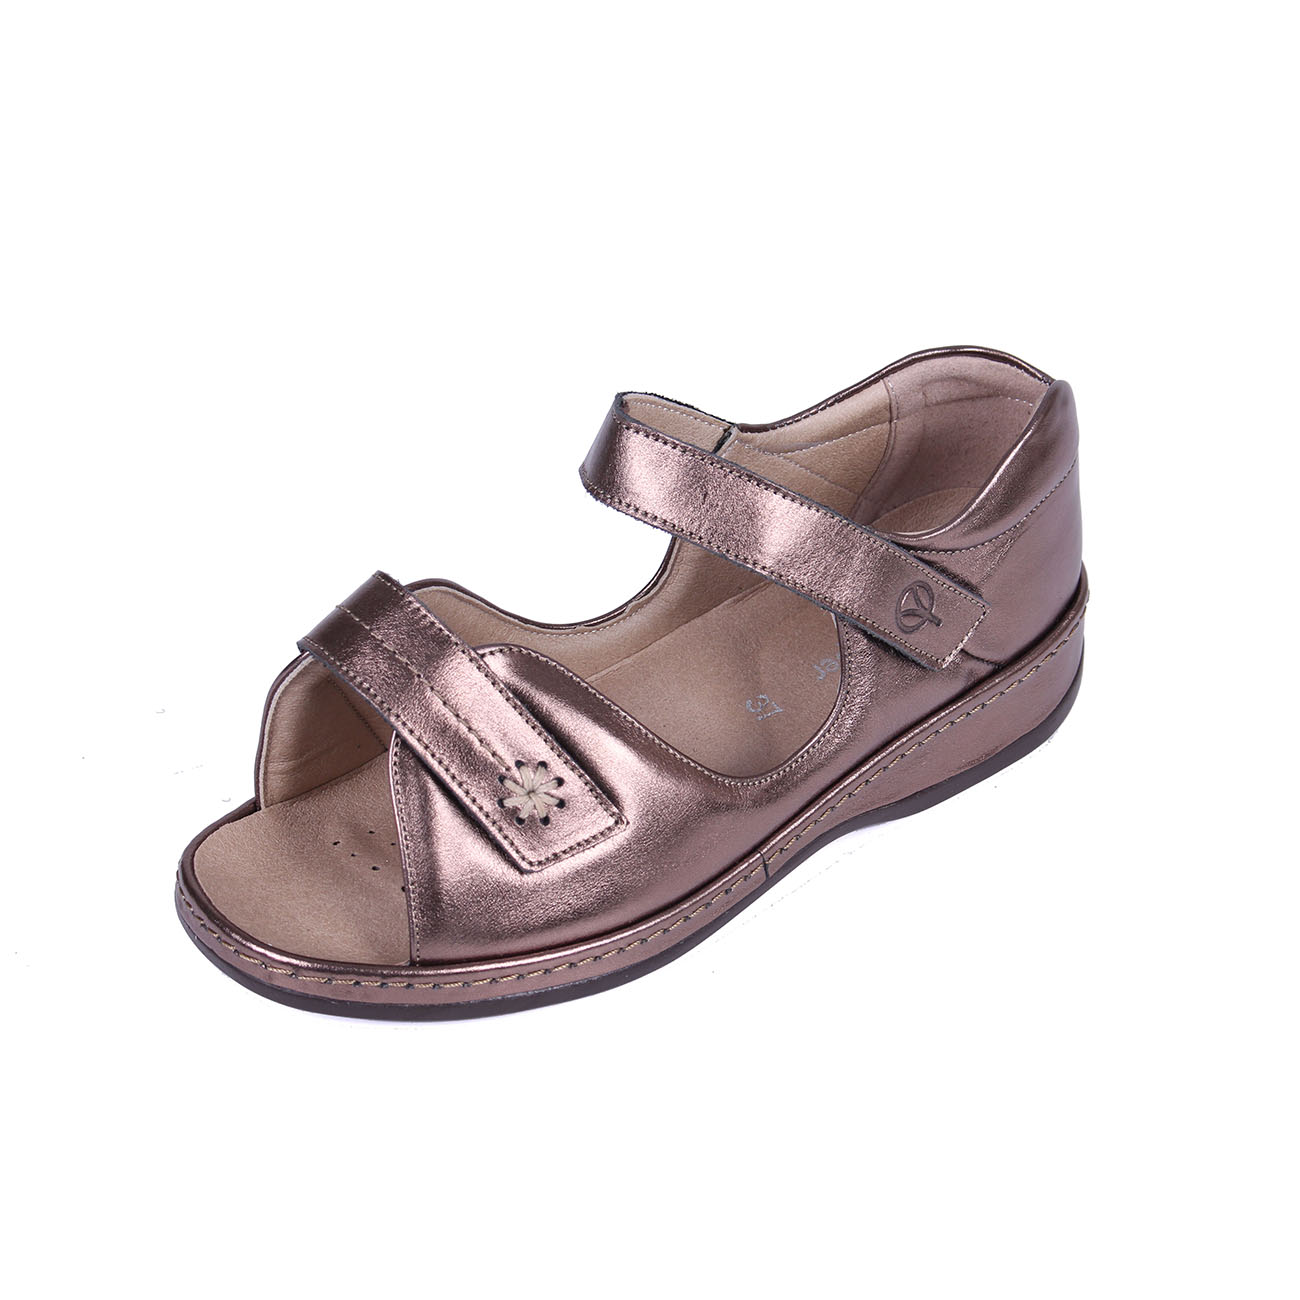 b2674b141 Sandpiper Coral Sandal adjustable and roomy for swollen feet